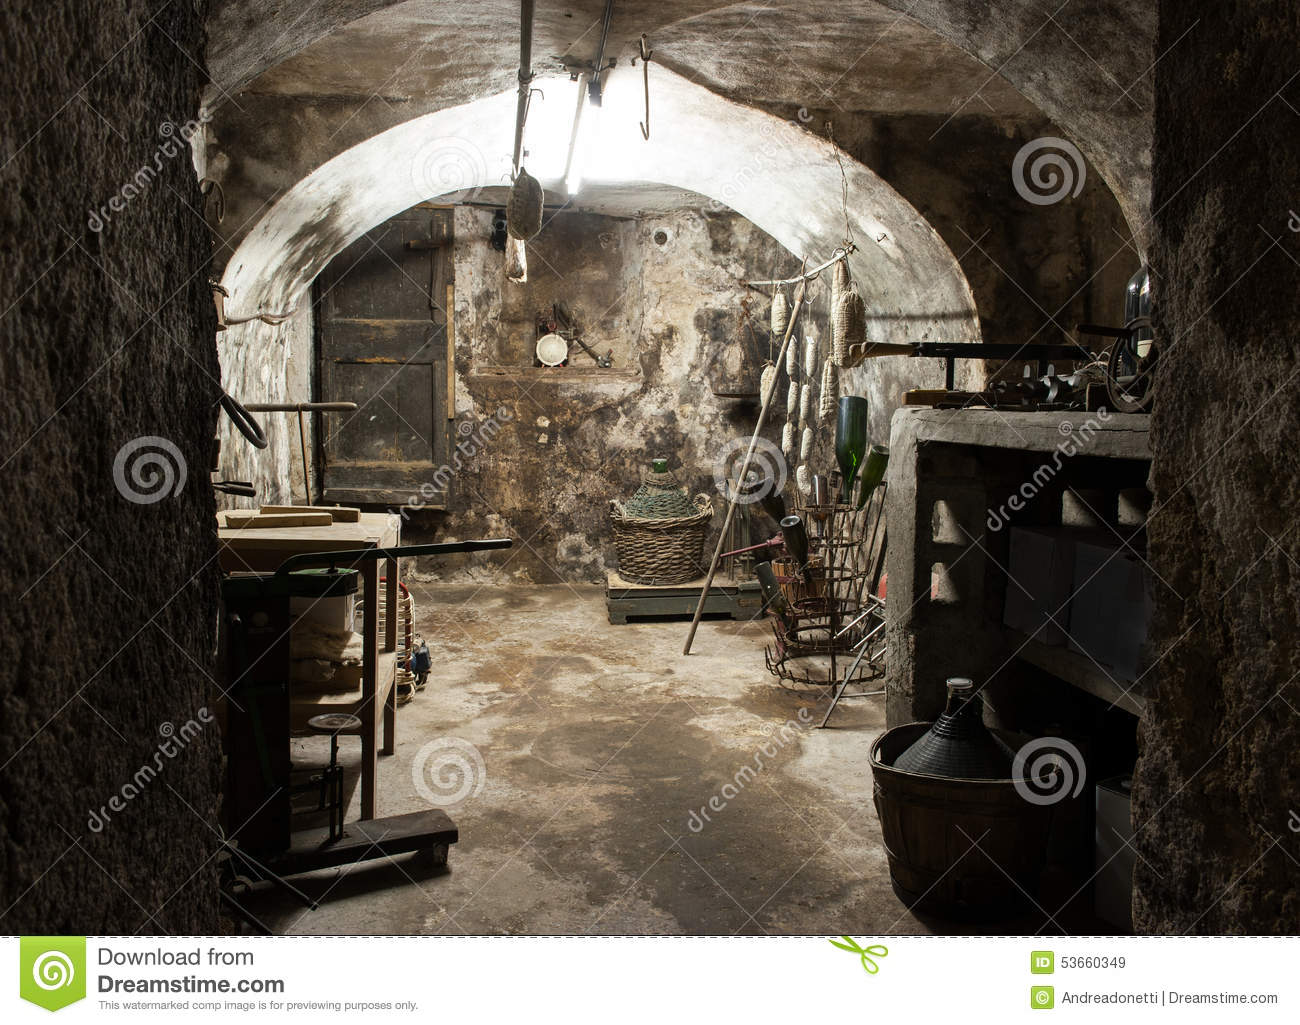 Vaulted Interior Of An Old Wine Cellar Stock Photo.